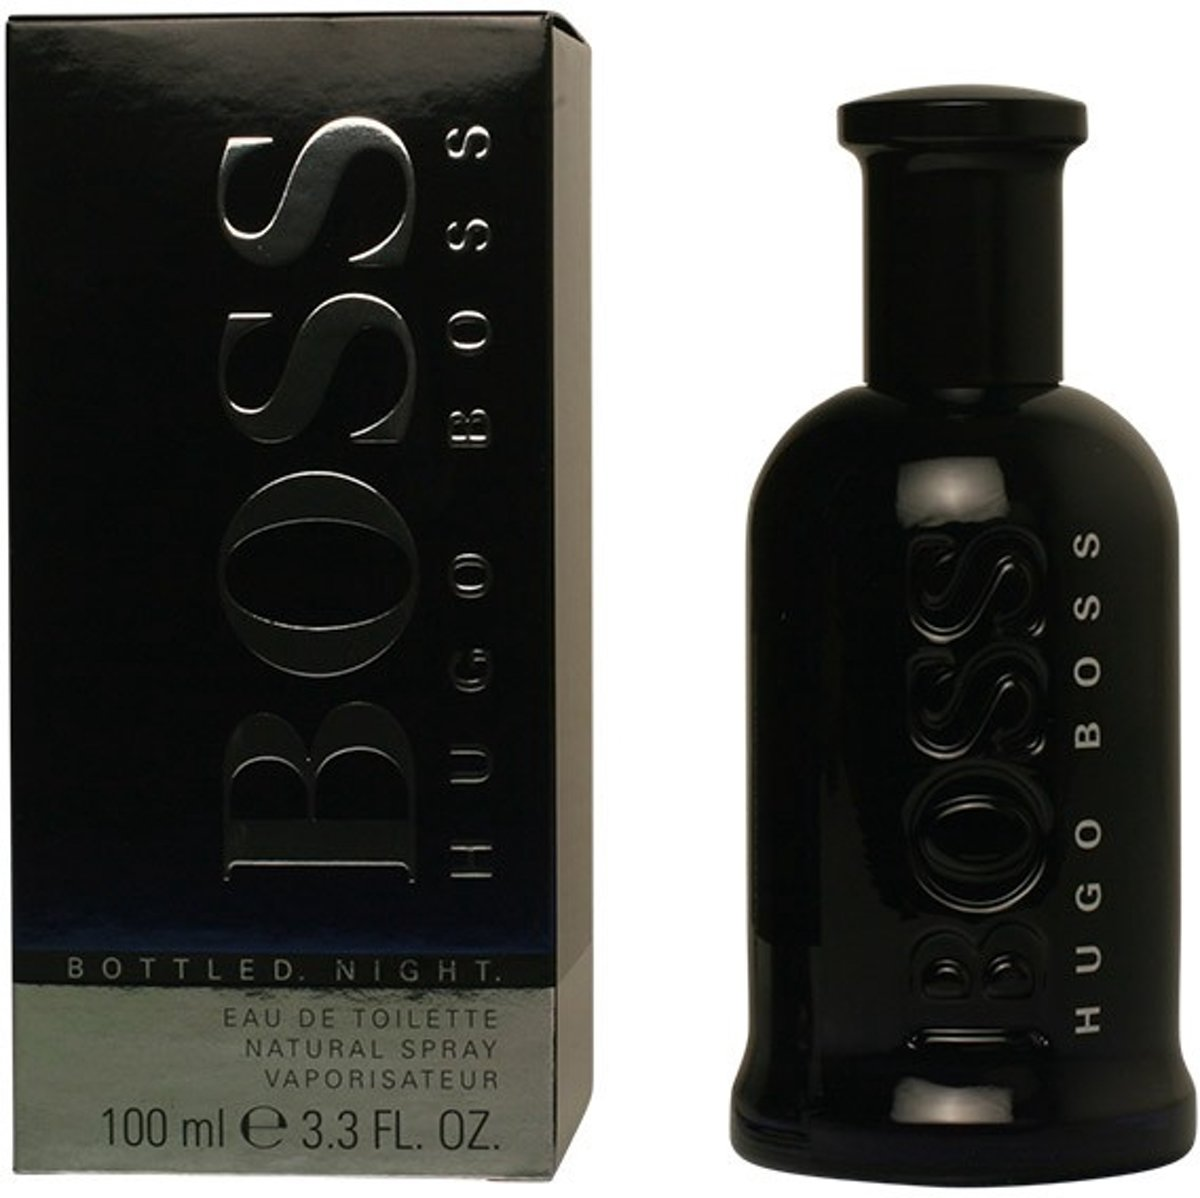 MULTI BUNDEL 2 stuks BOSS BOTTLED NIGHT eau de toilette spray 100 ml